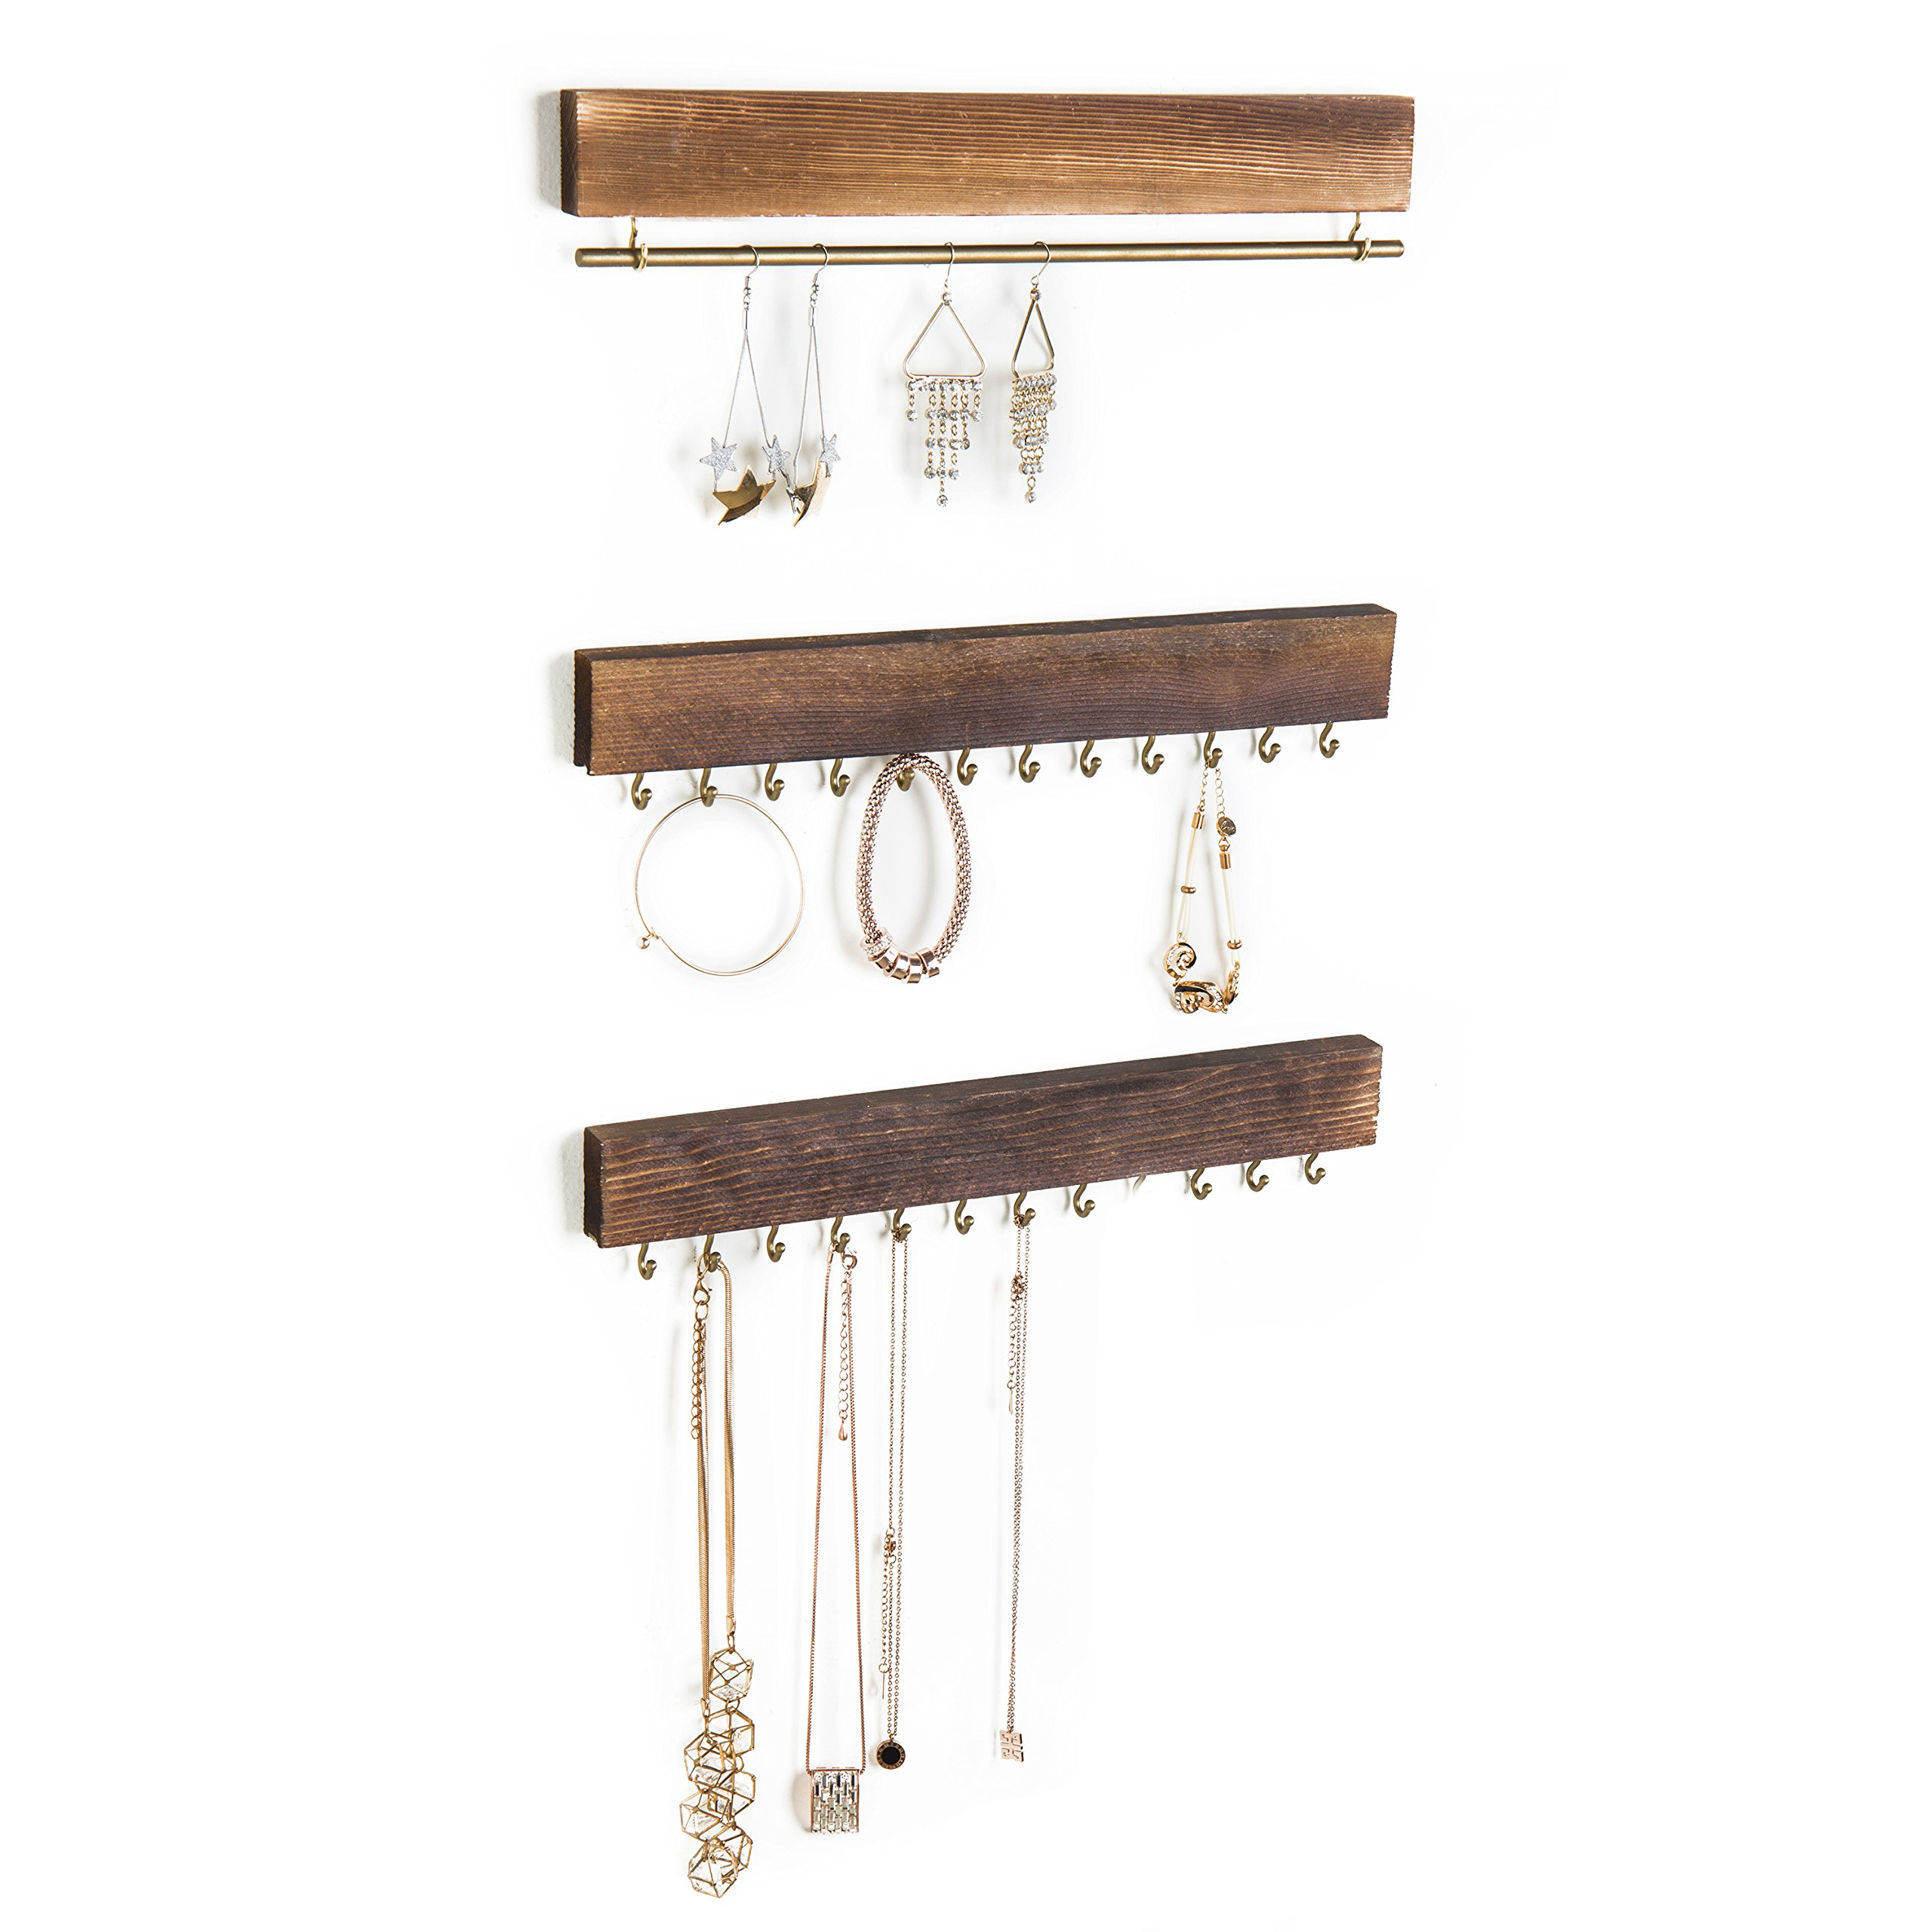 MyGift Set of 3 Rustic Wood & Gold Tone Metal Jewelry Organizers/Necklace & Bracelet Hook Racks/Earring Bar by MyGift